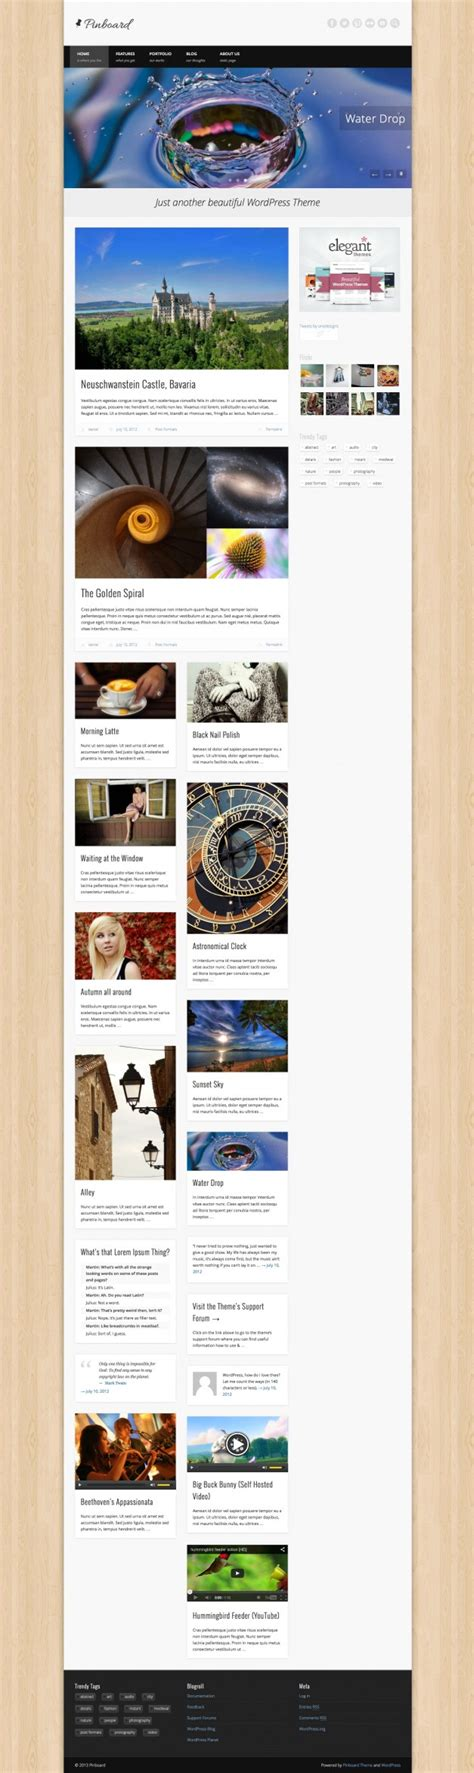 bgc just another wordpress site pinboard tema gratuito per wordpress in stile bacheca